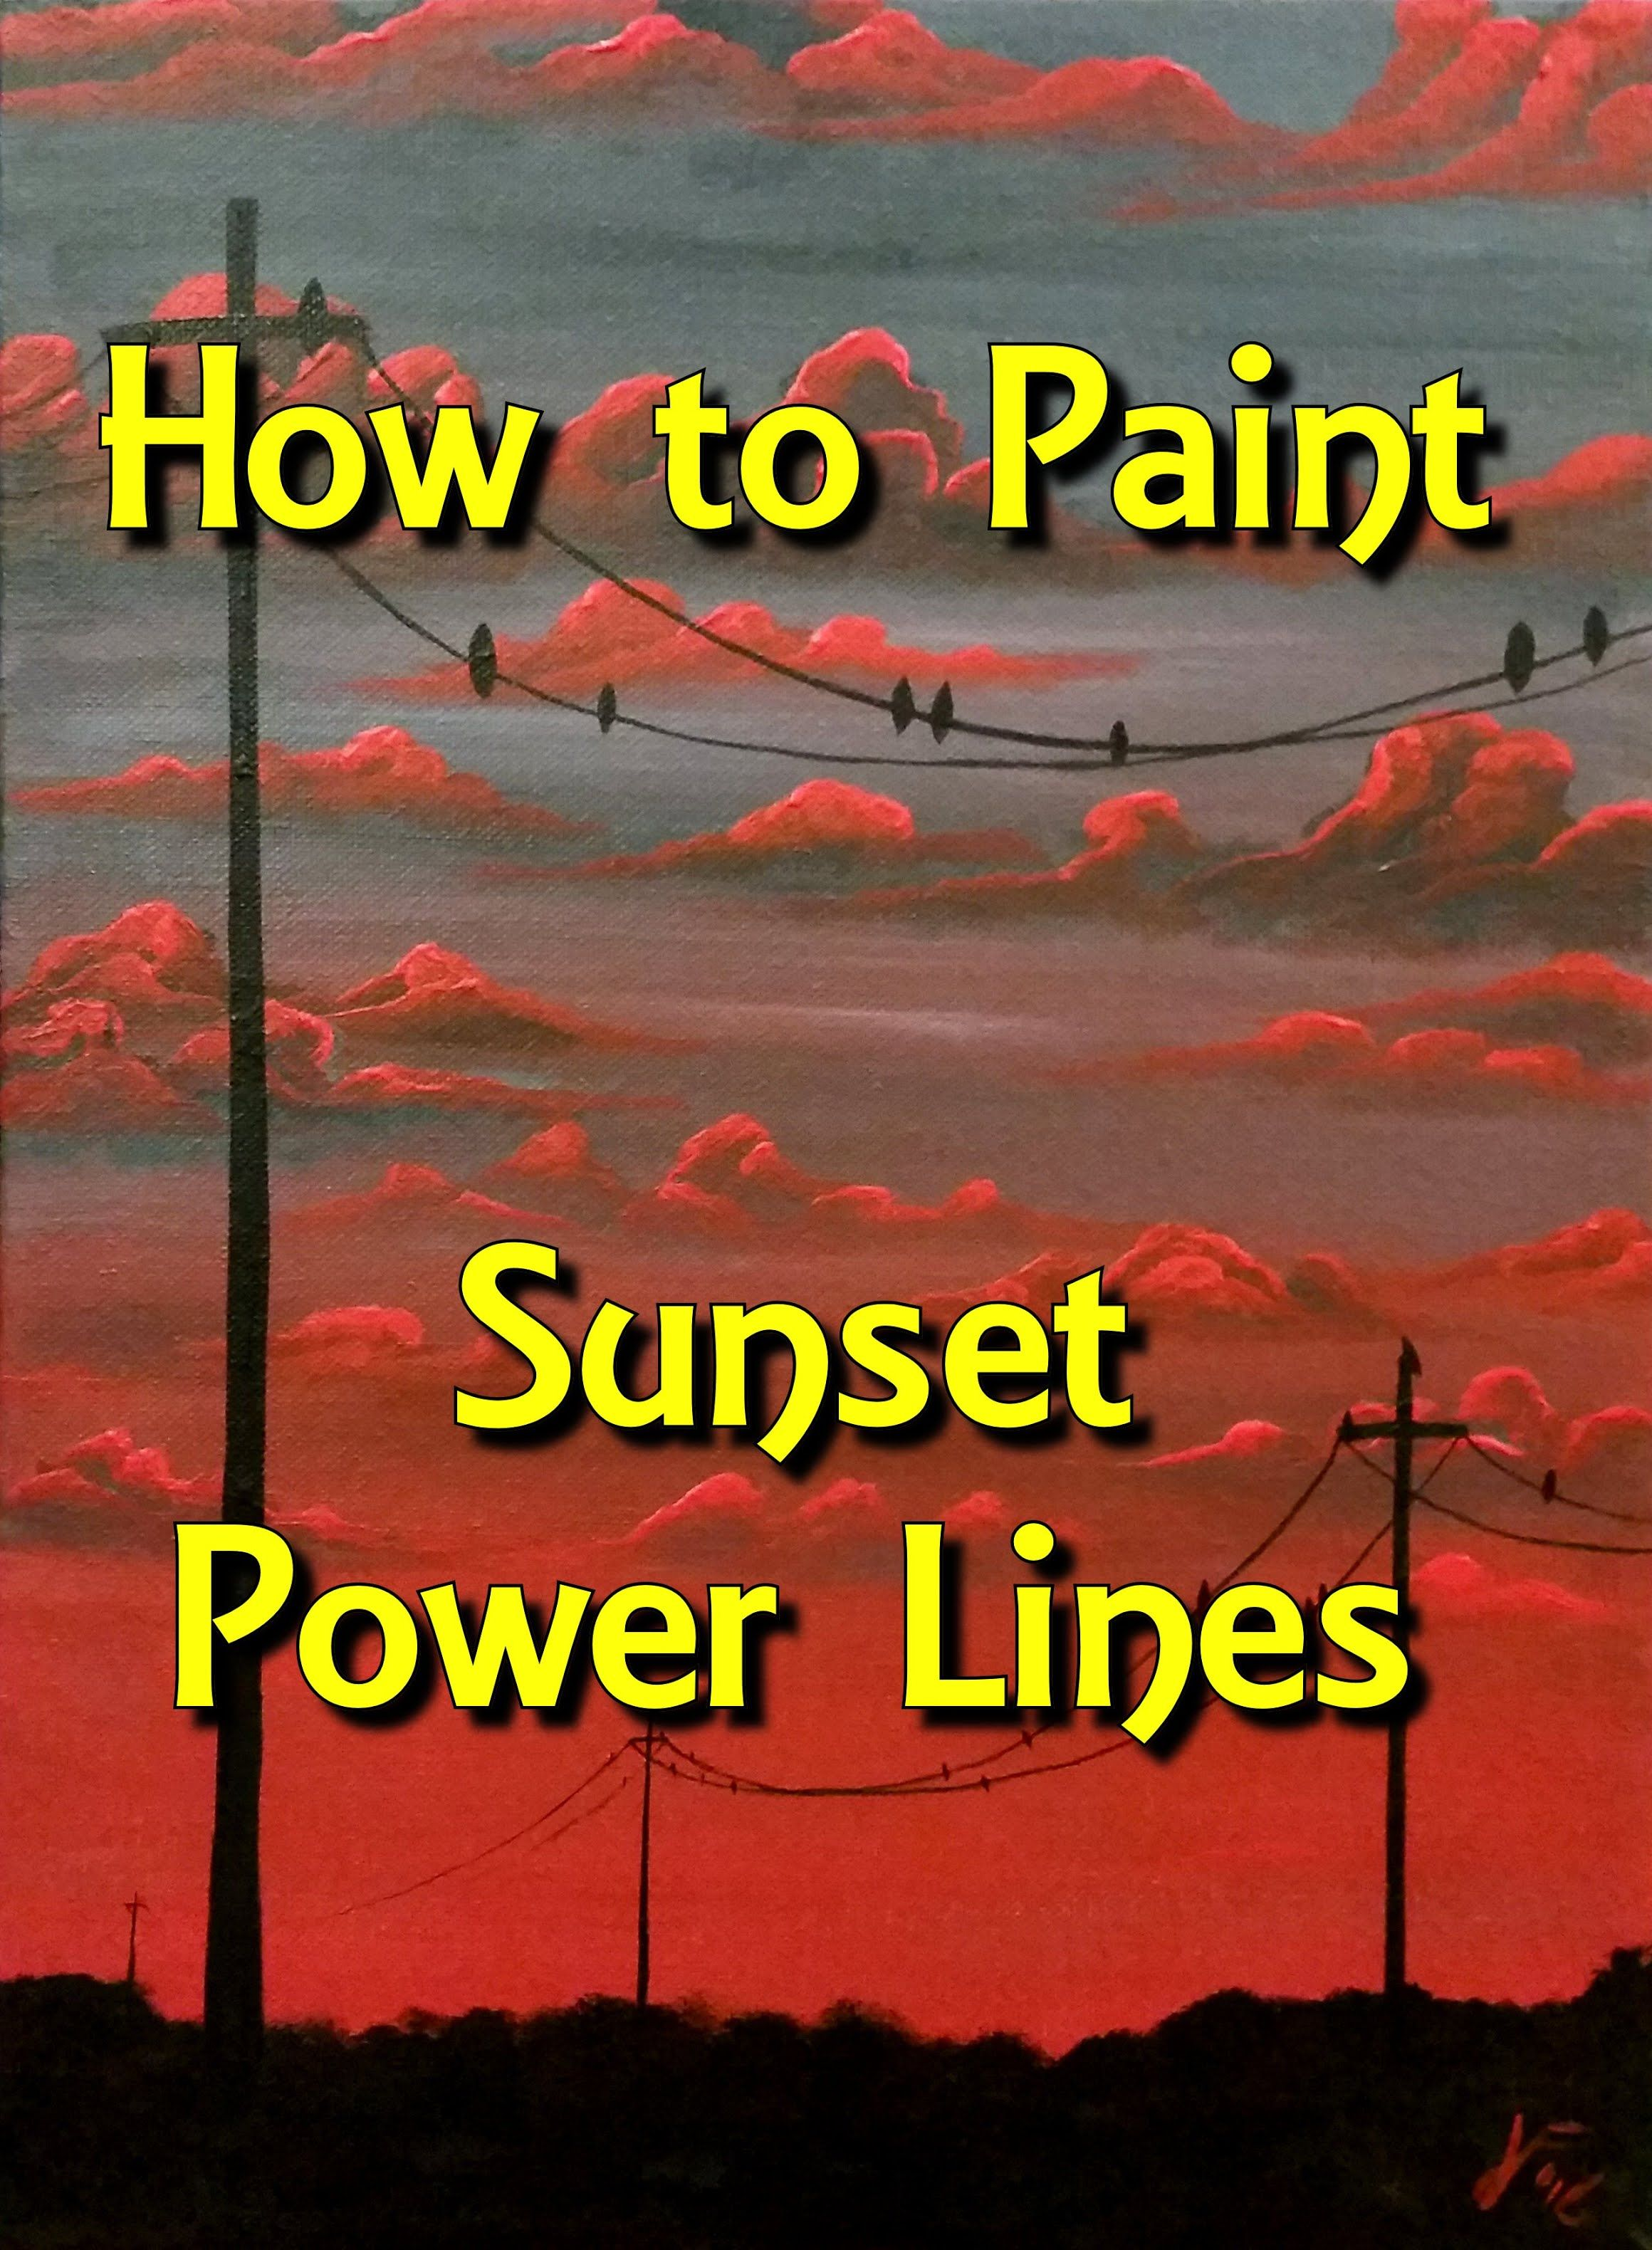 Sunset power lines step by step acrylic painting on canvas for Step by step acrylic painting tutorial